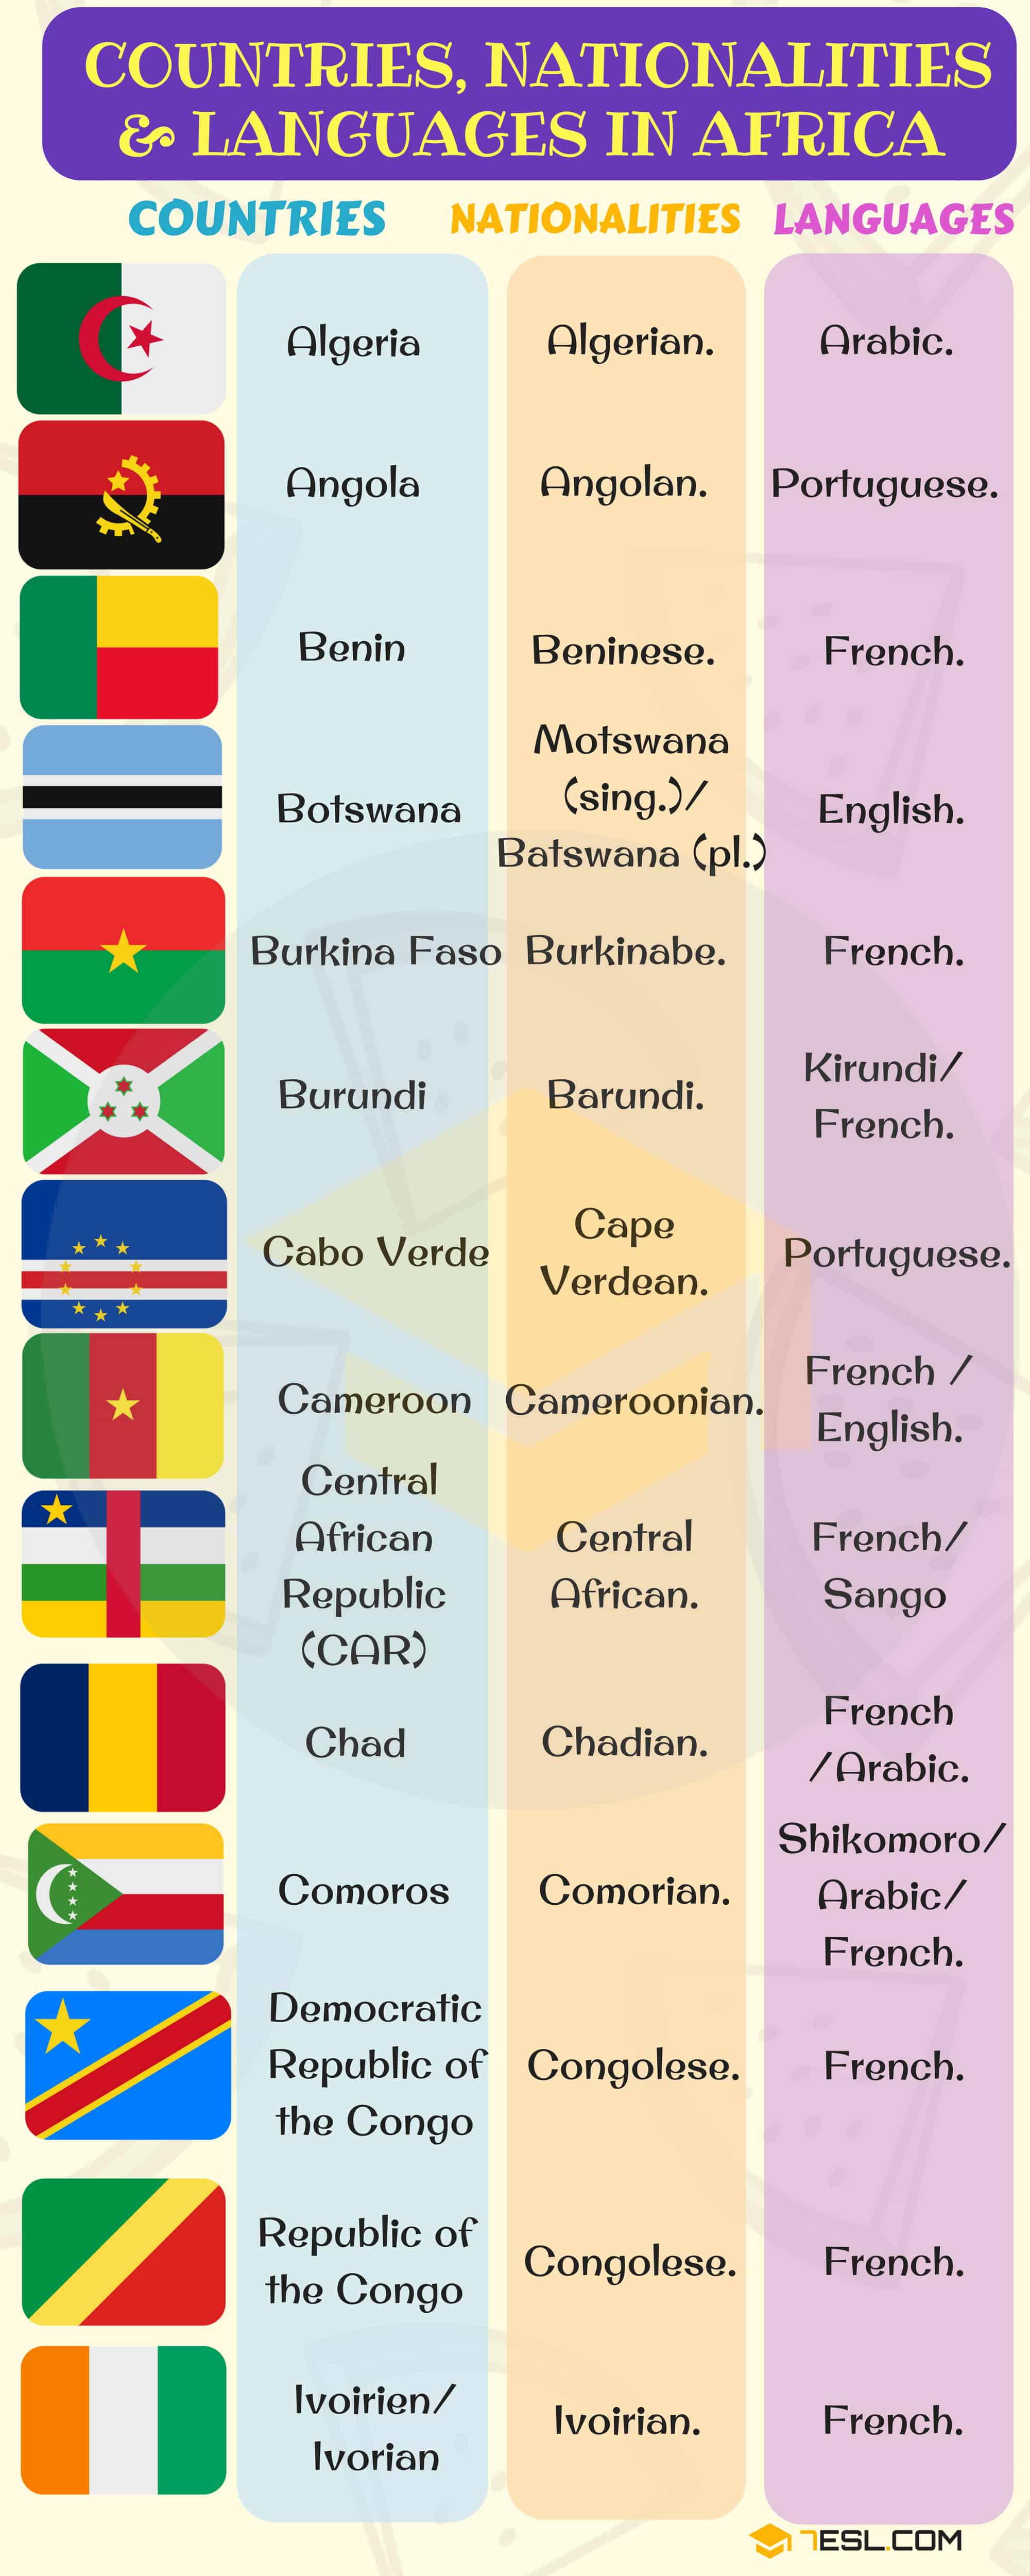 Languages, Countries and Nationalities | List of Countries Image 6